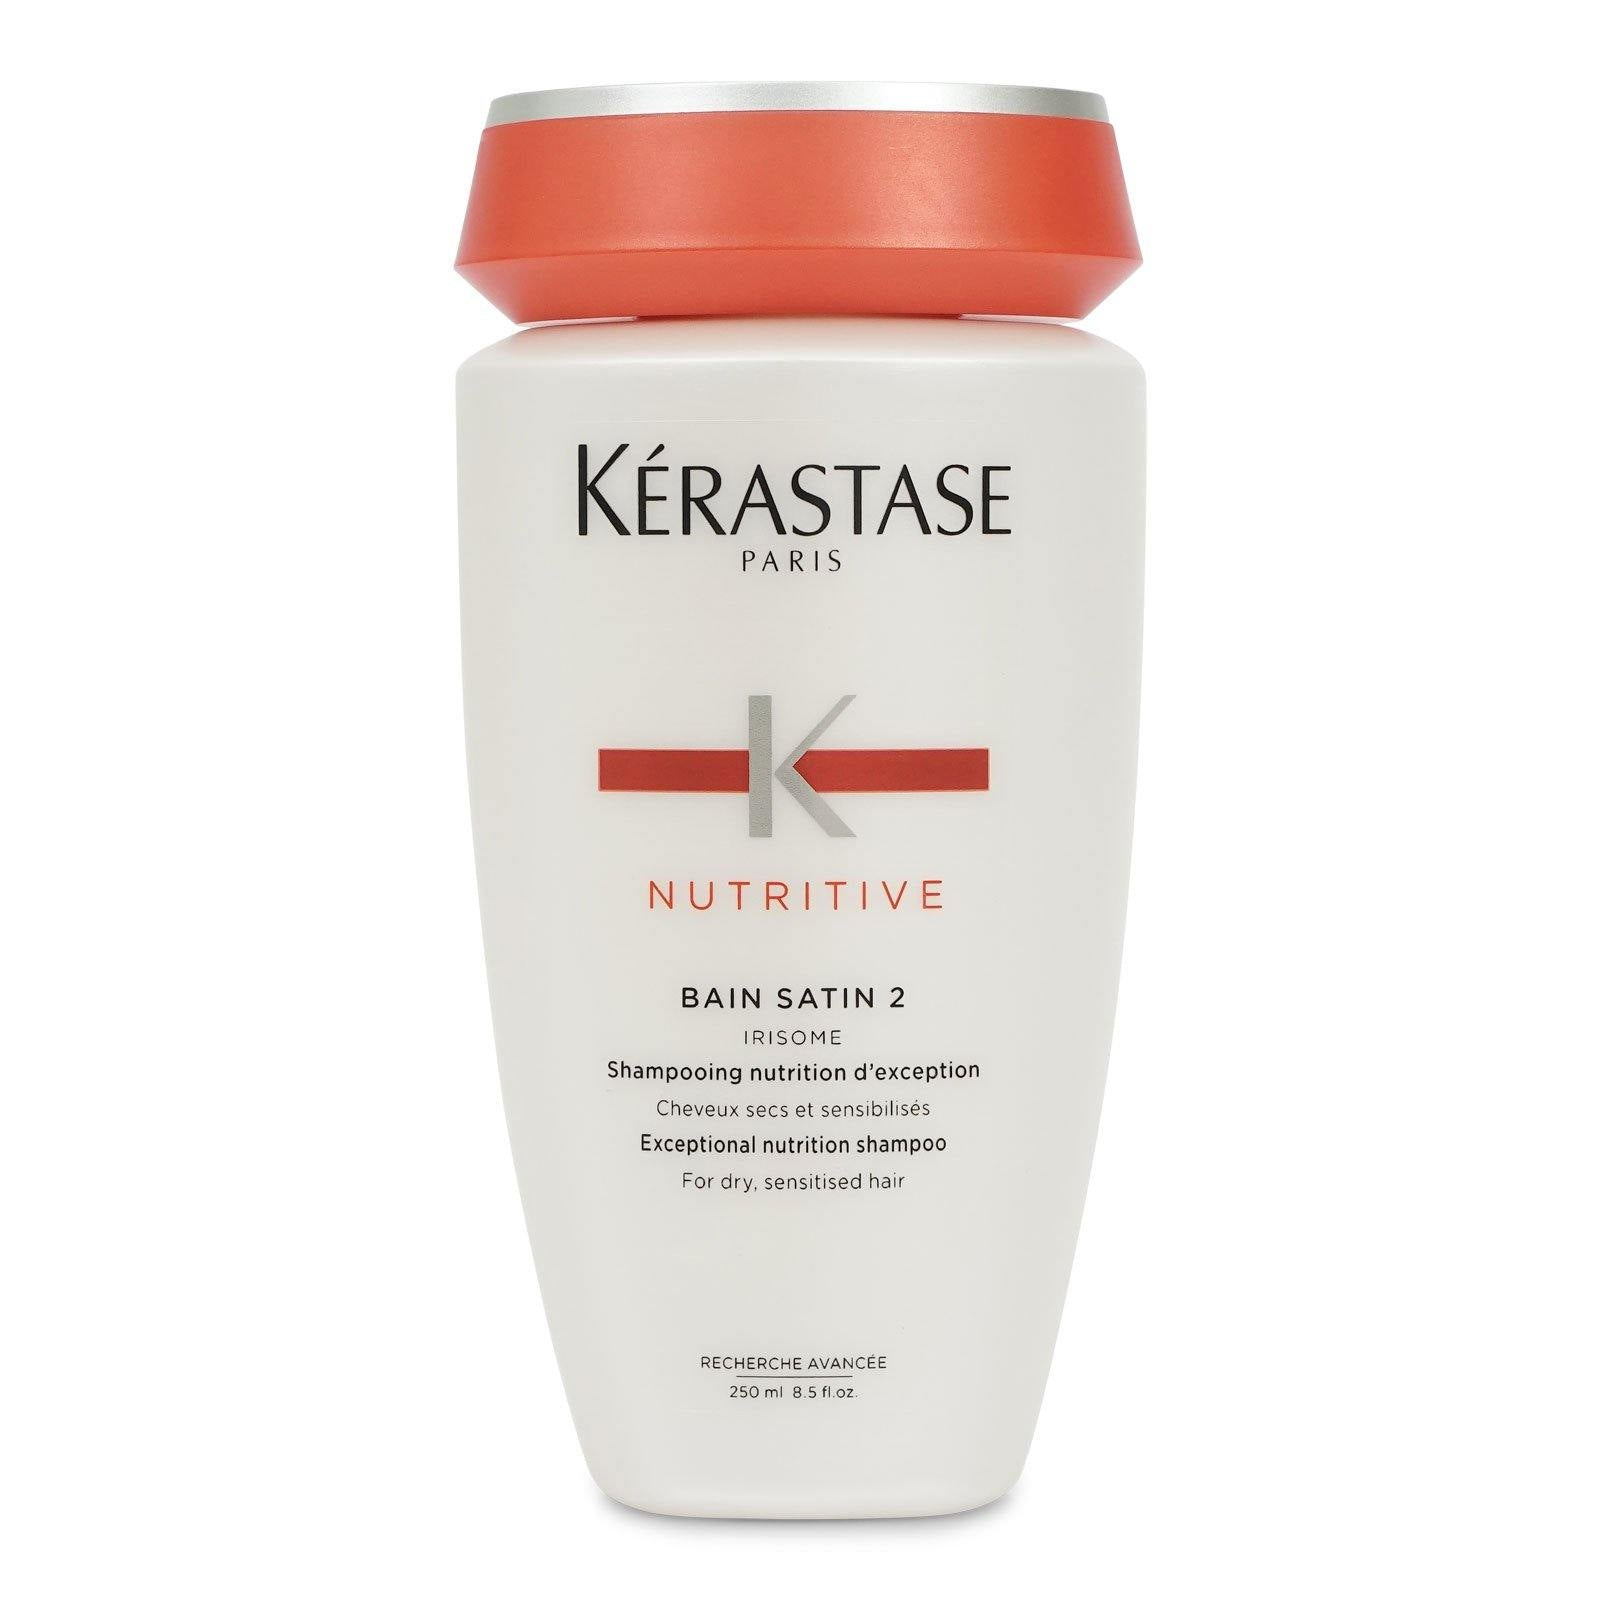 Kerastase Nutritive Bain Moisturizing Shampoo, Dry Hair 250ml/8.5 fl oz (3/cs)